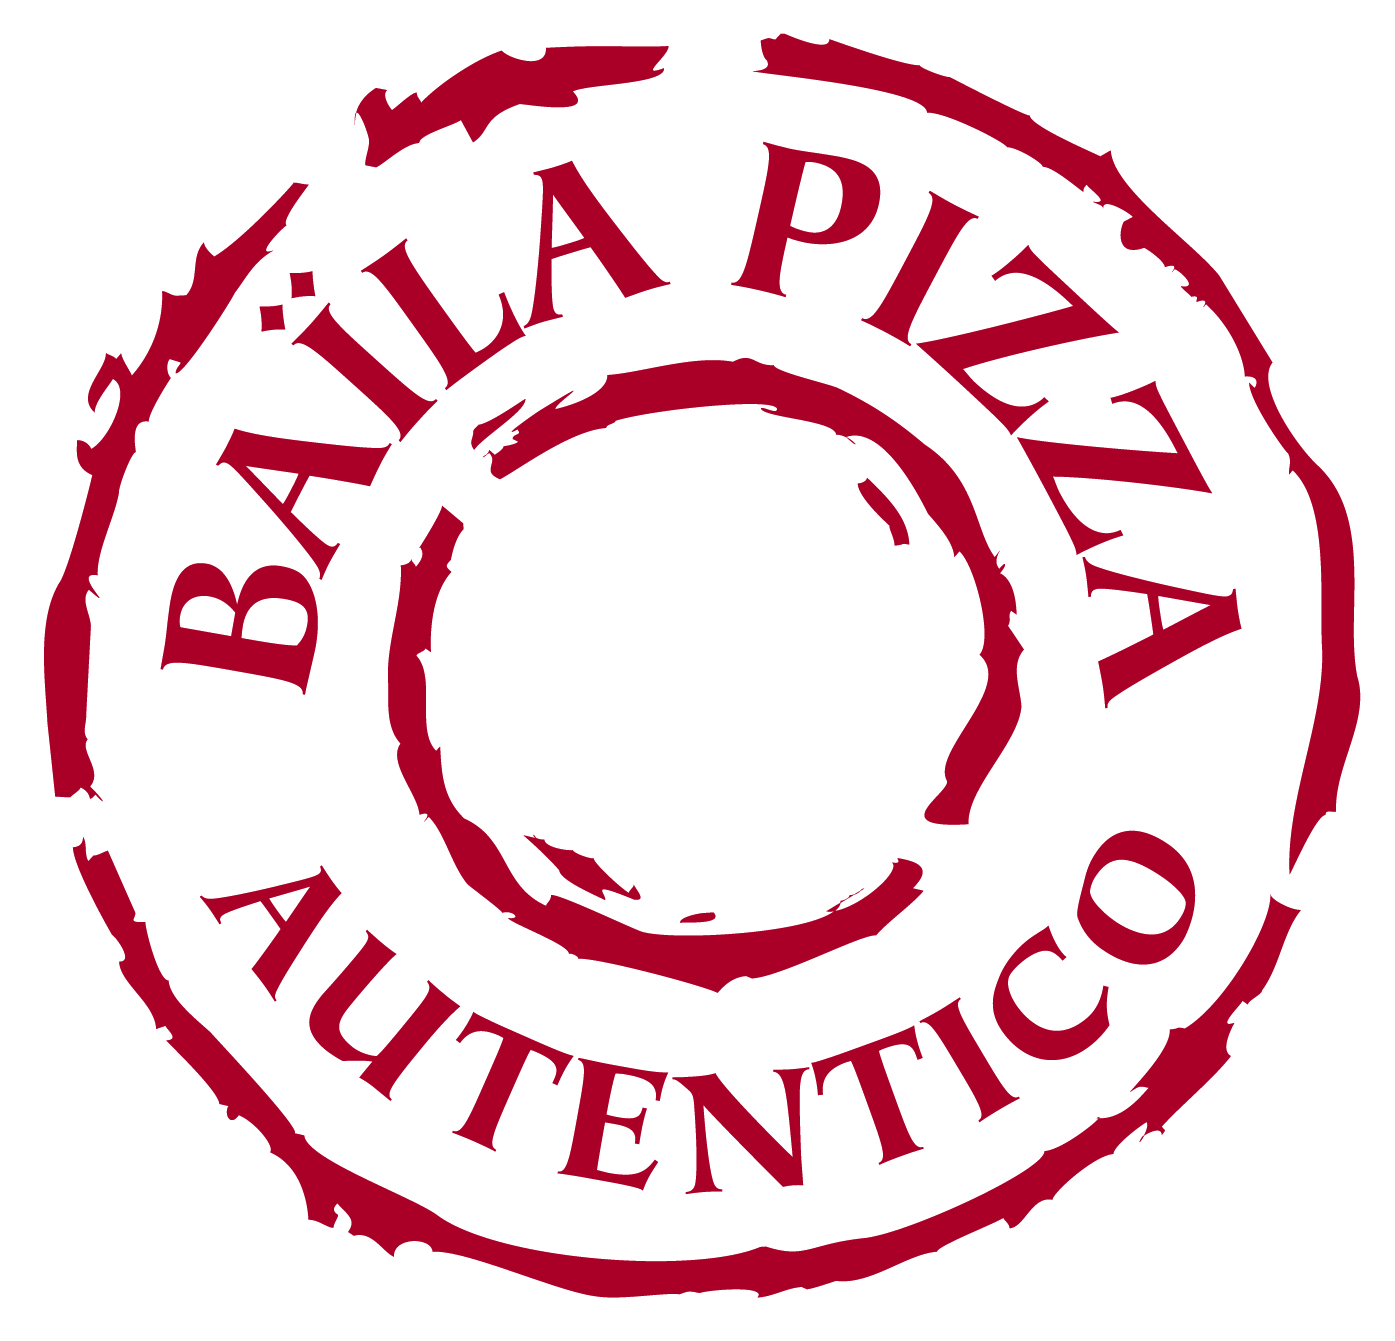 logo_baila_pizza_red3.jpg